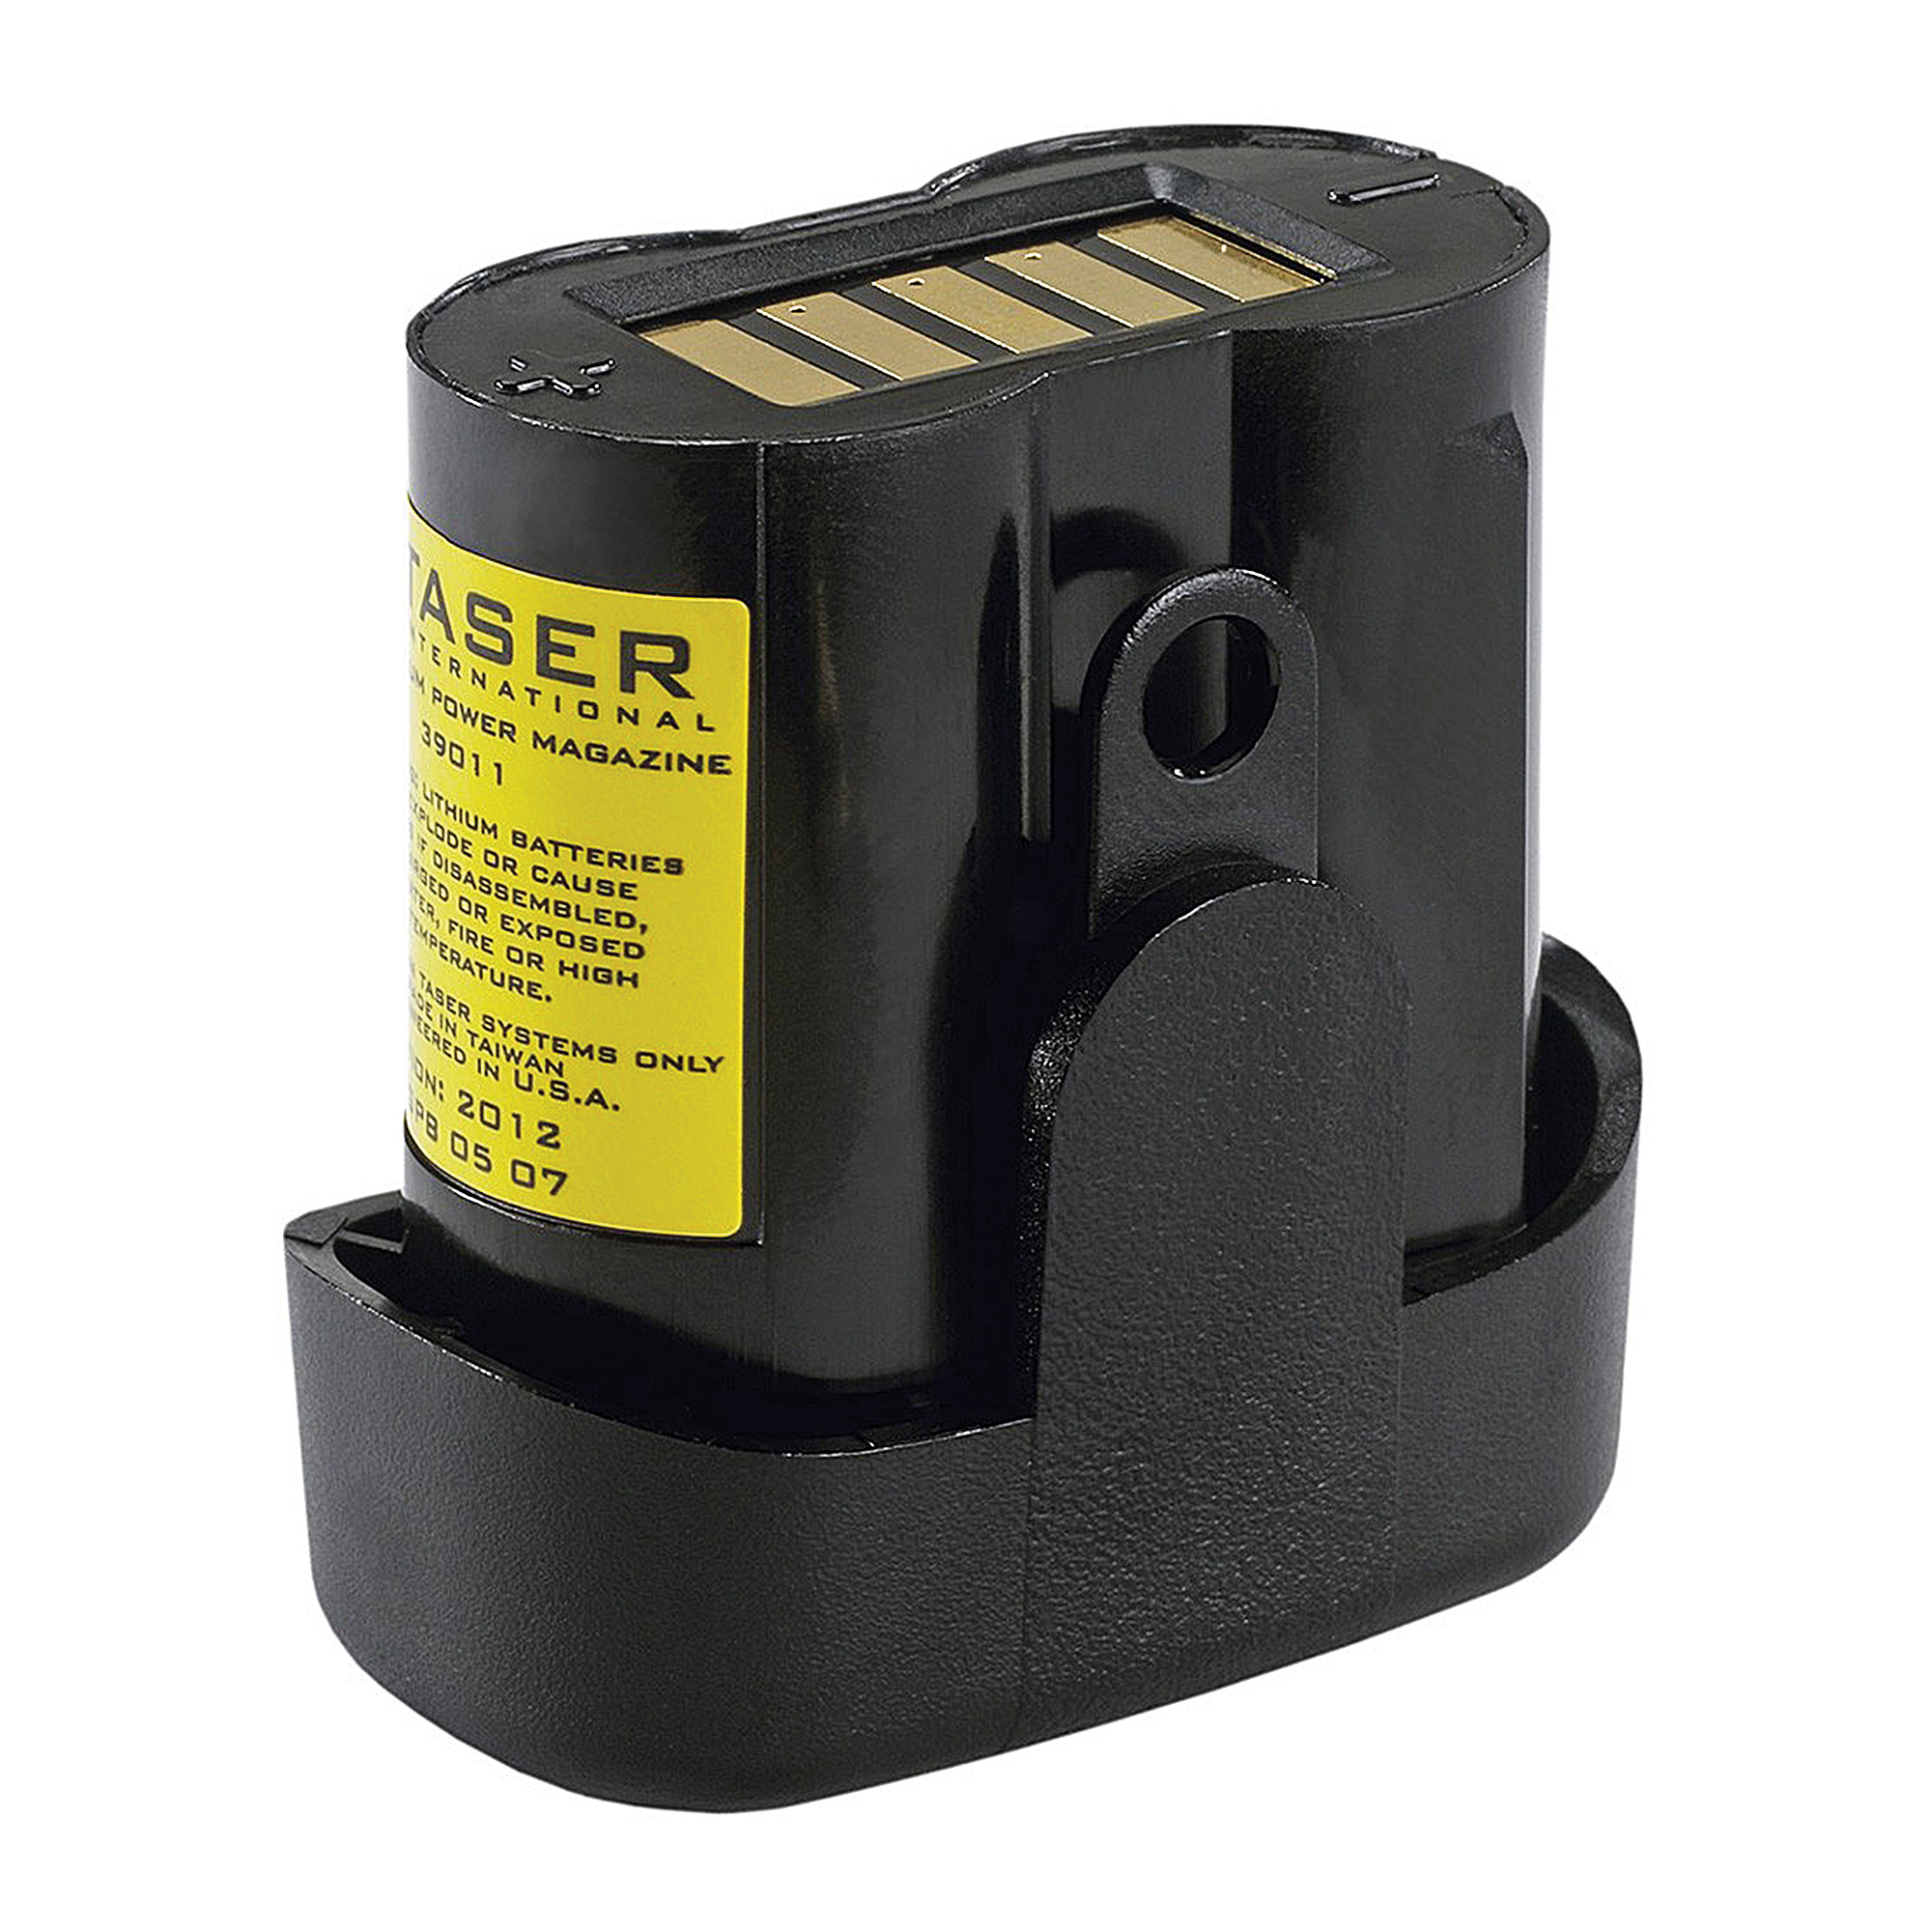 This durable lithium power magazine powers all C2 devices and lasts up to 50 firings. This is not a rechargeable battery